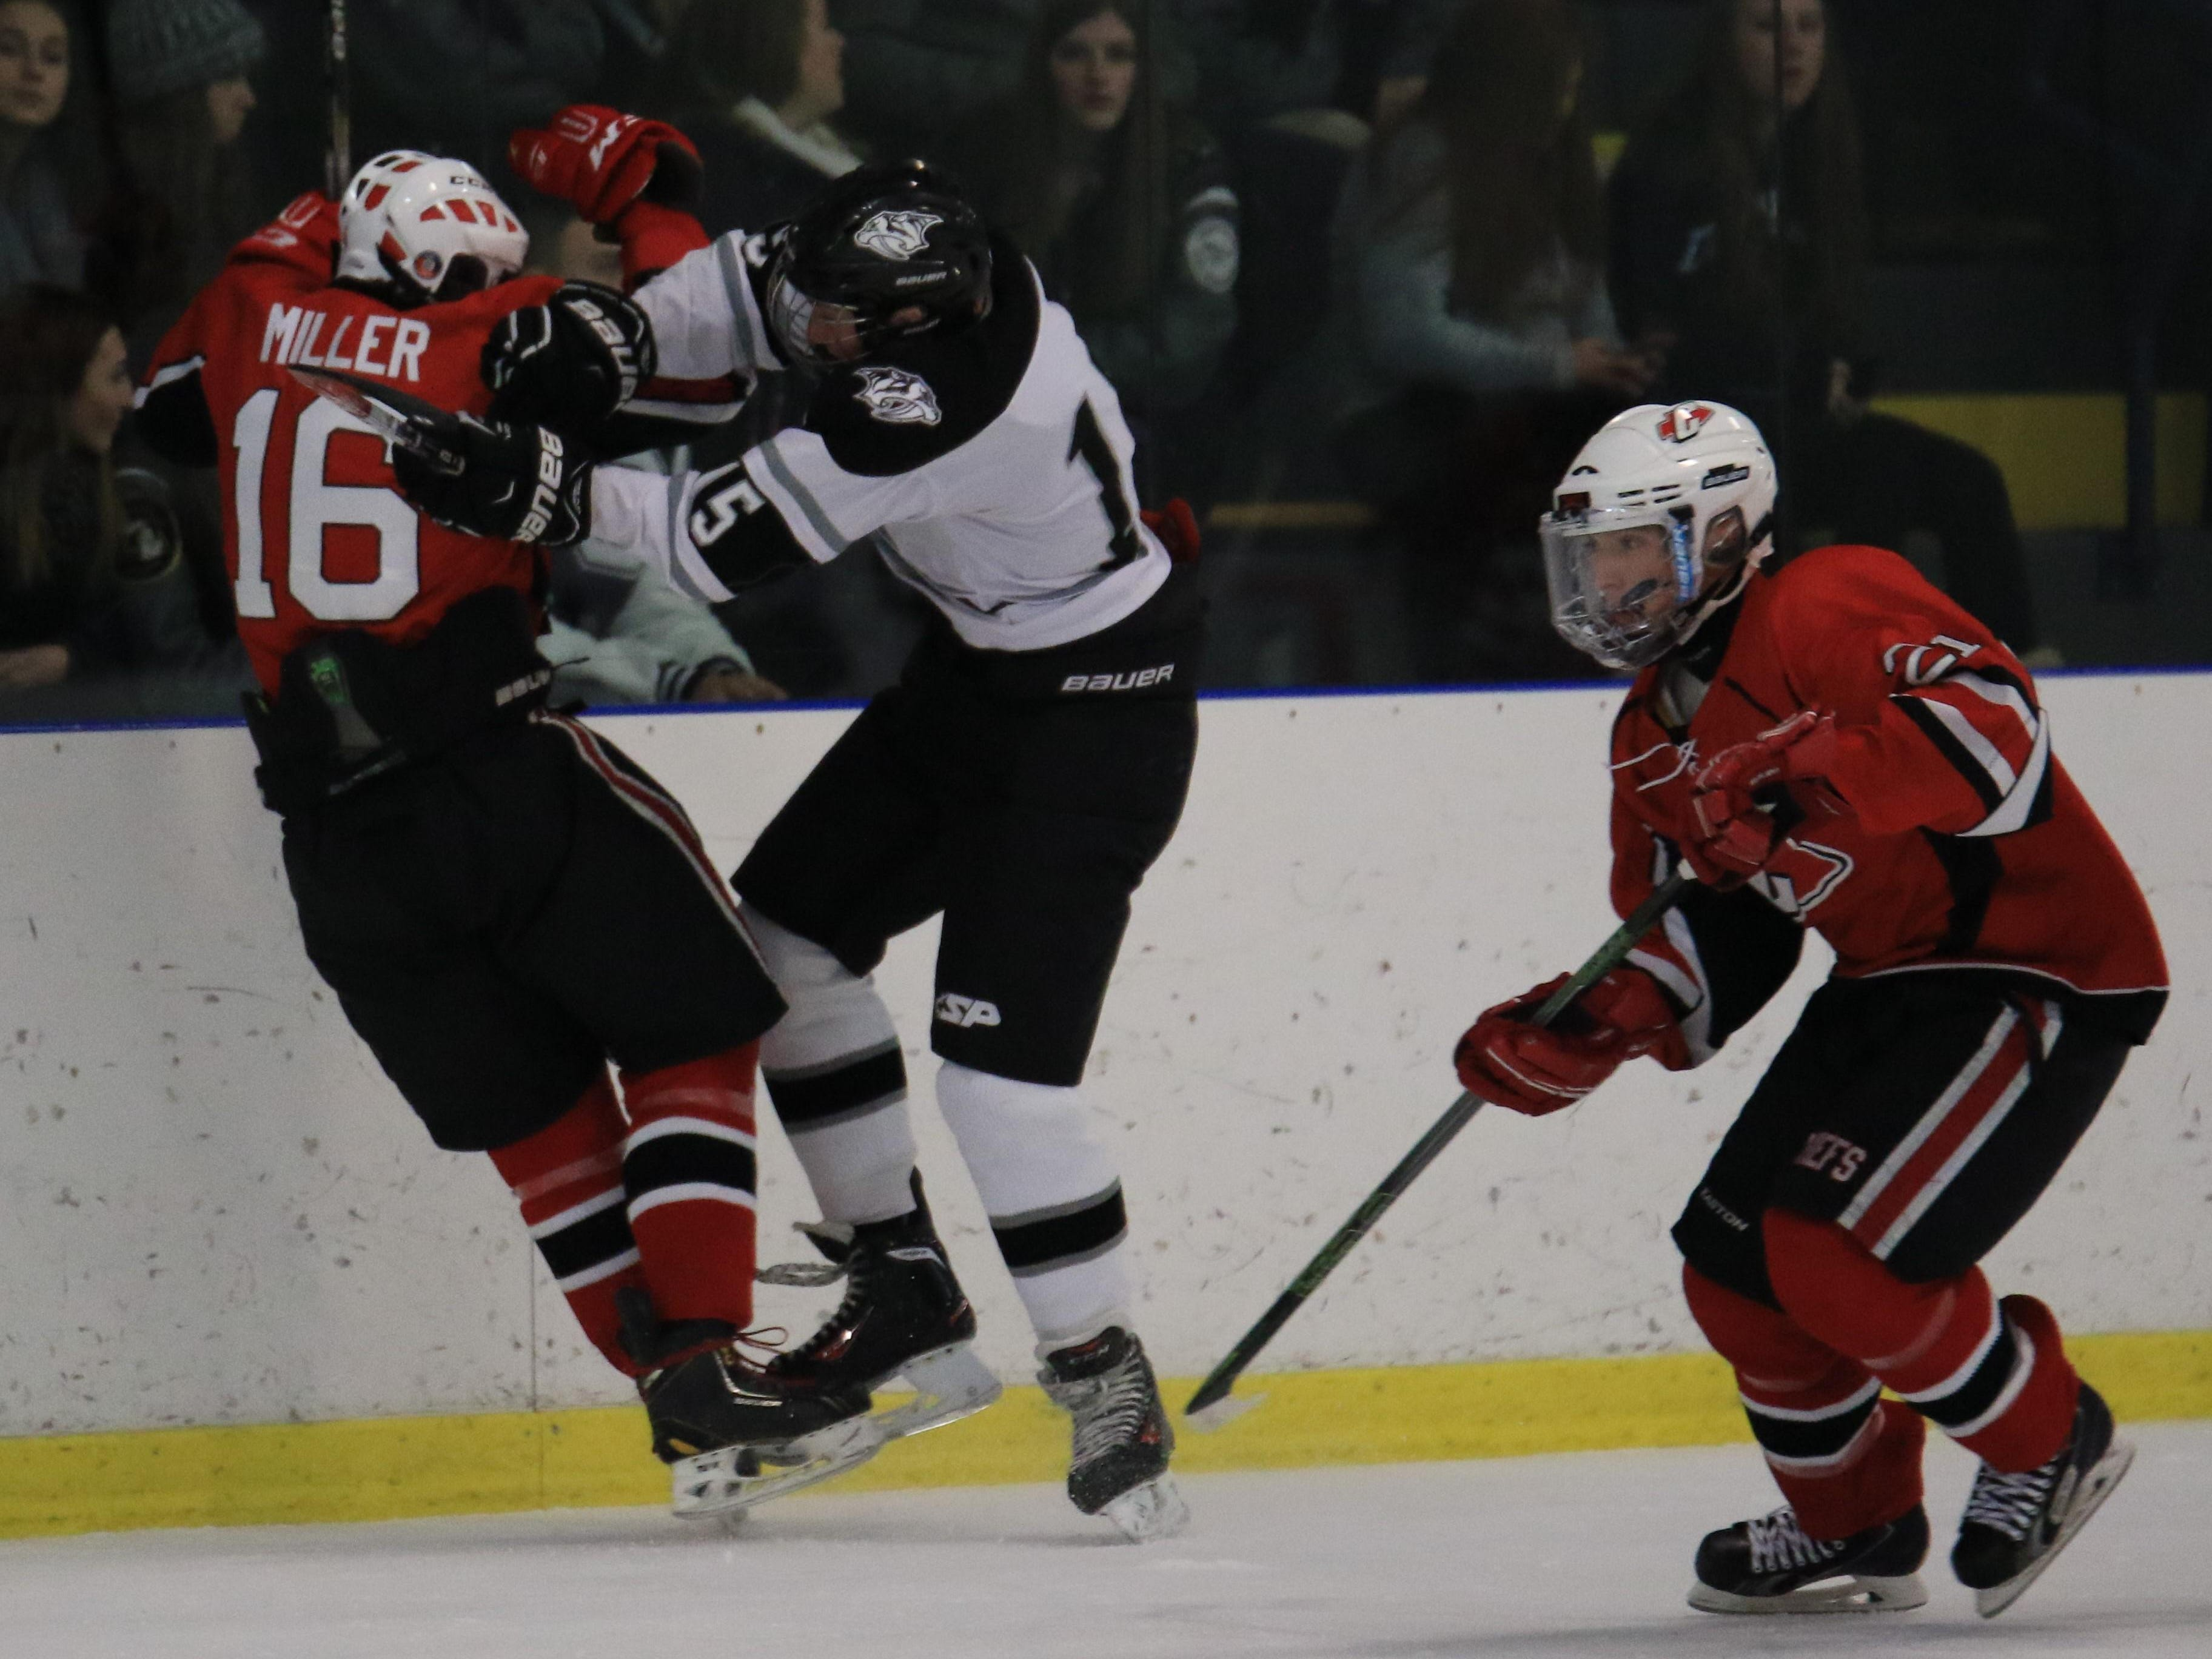 Delivering a hard body check against Canton's Jalen Miller (No. 16) is Plymouth's Christian Mullenax.